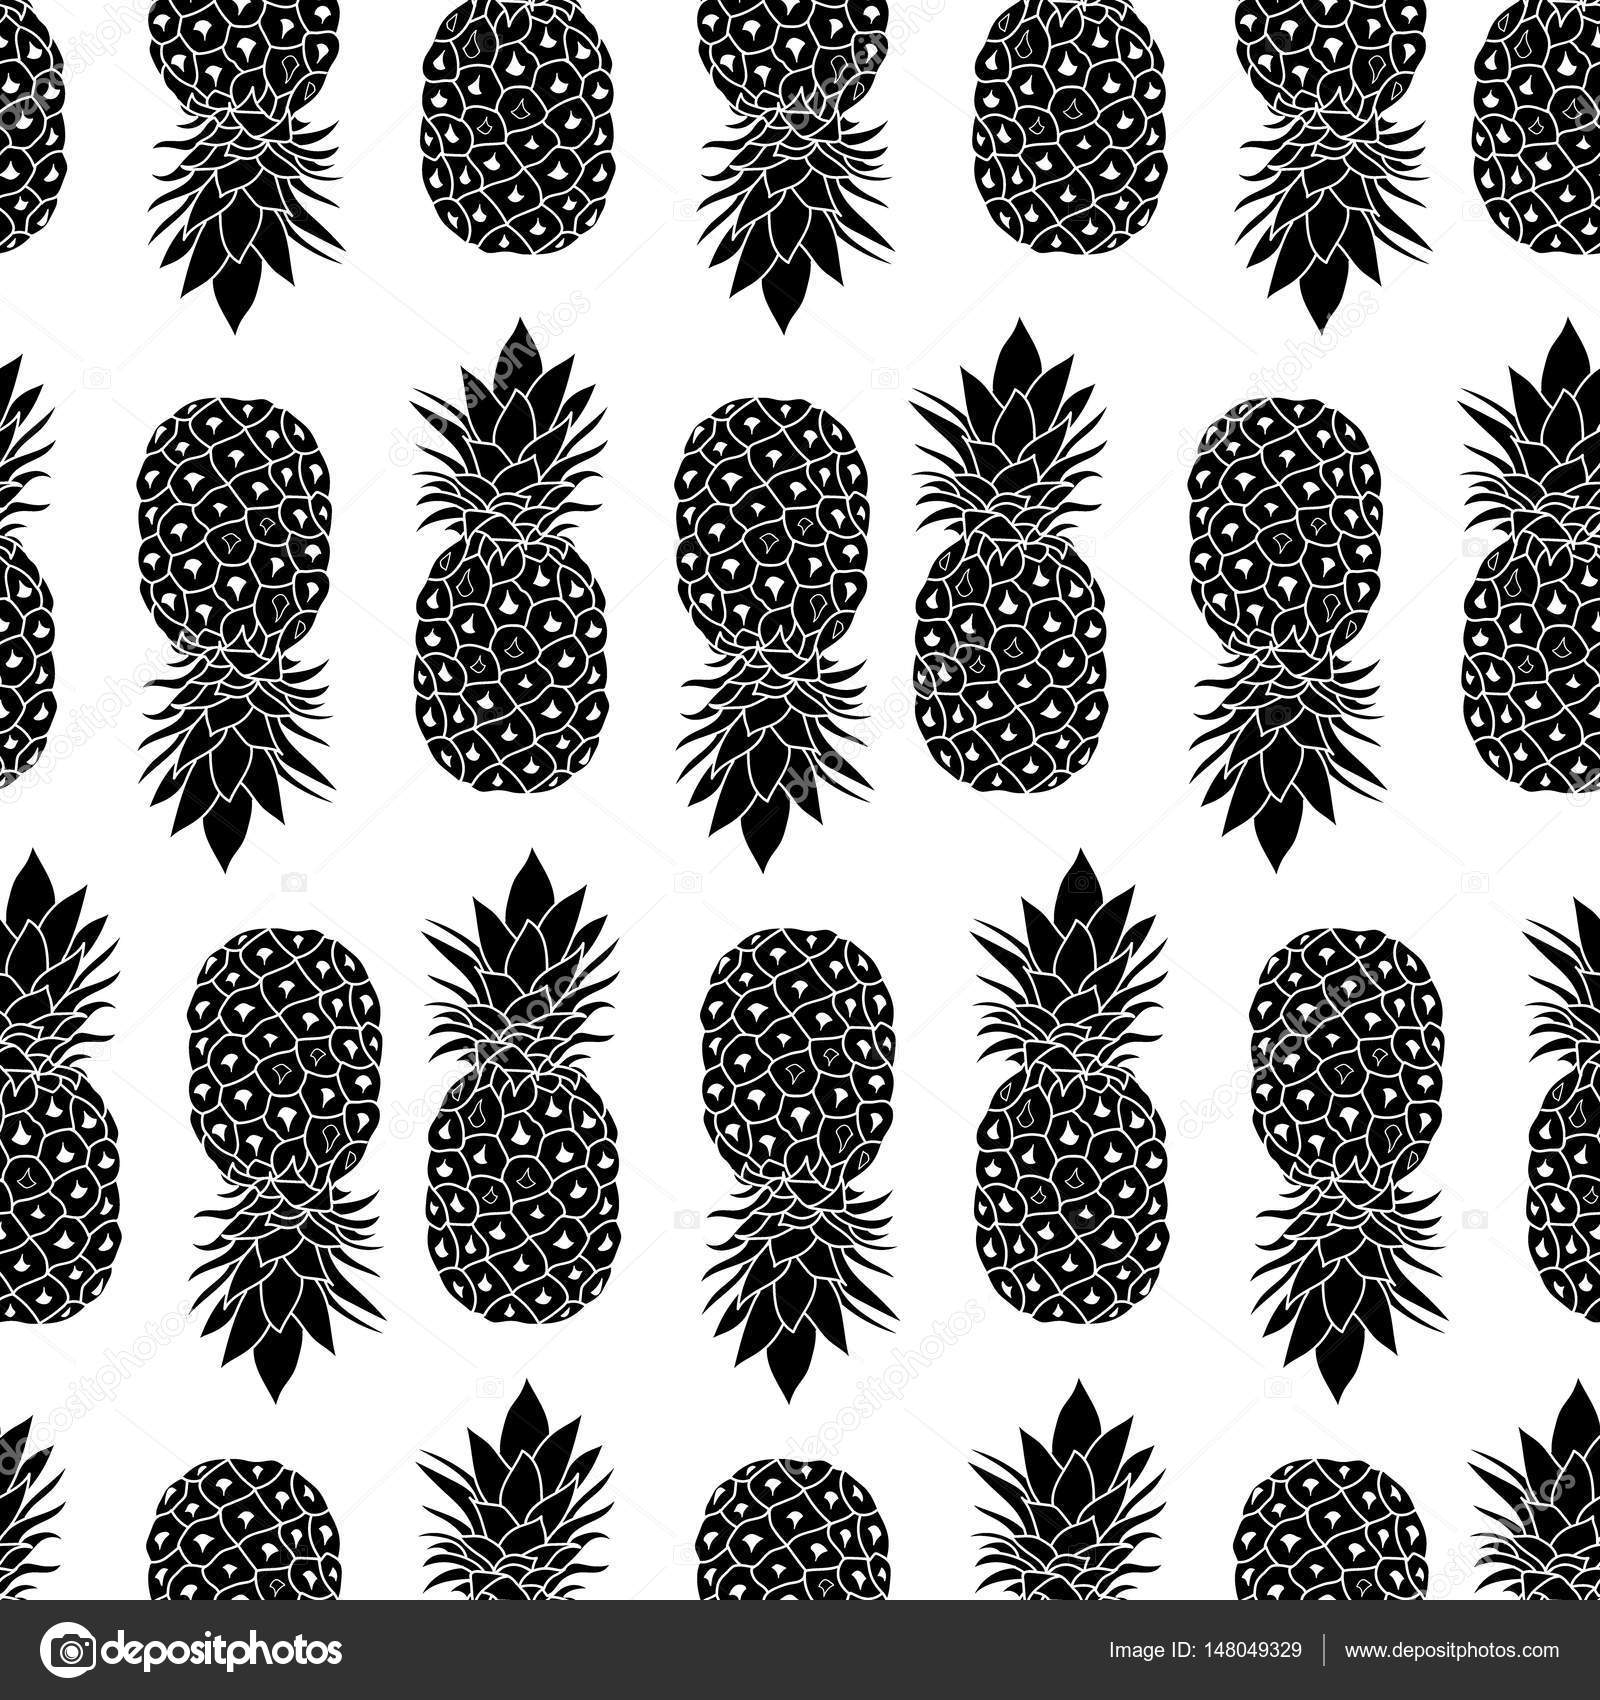 Fresh Black And White Pineapples Geometric Vector Repeat Seamless Pattrern In Classic Colors Great For Fabric Packaging Wallpaper Invitations